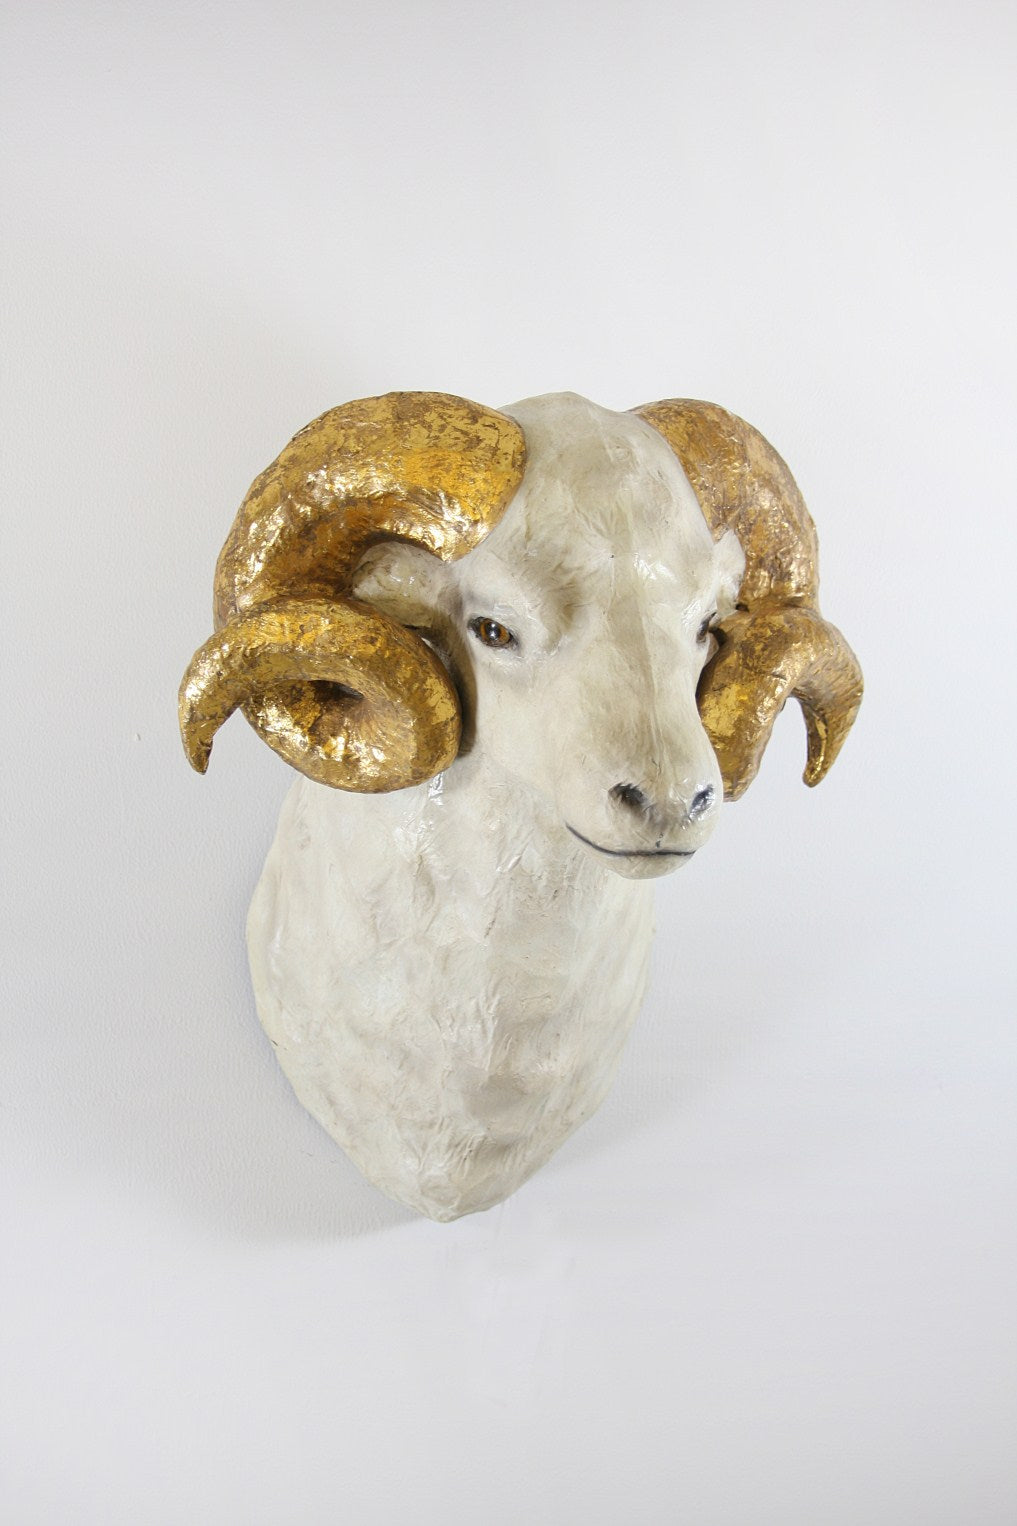 RAM WITH GOLD HORNS